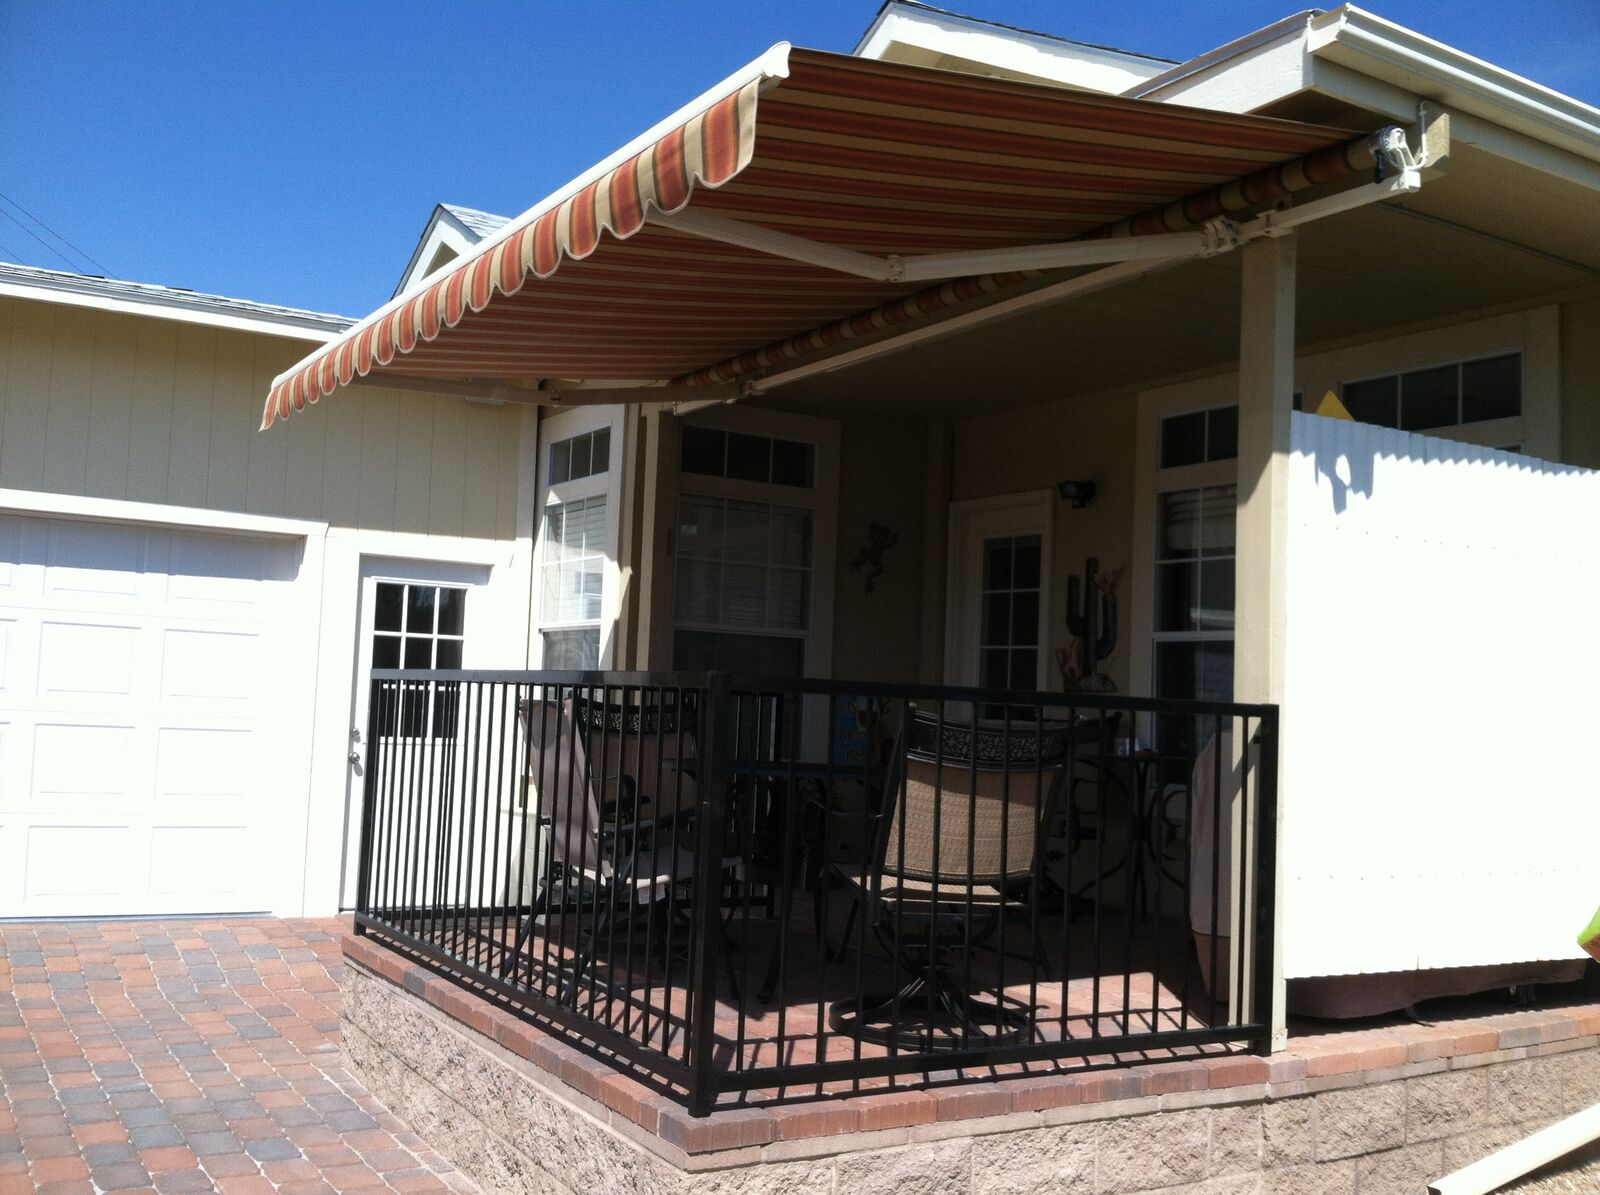 IMG_1051 Retractable Awning 1